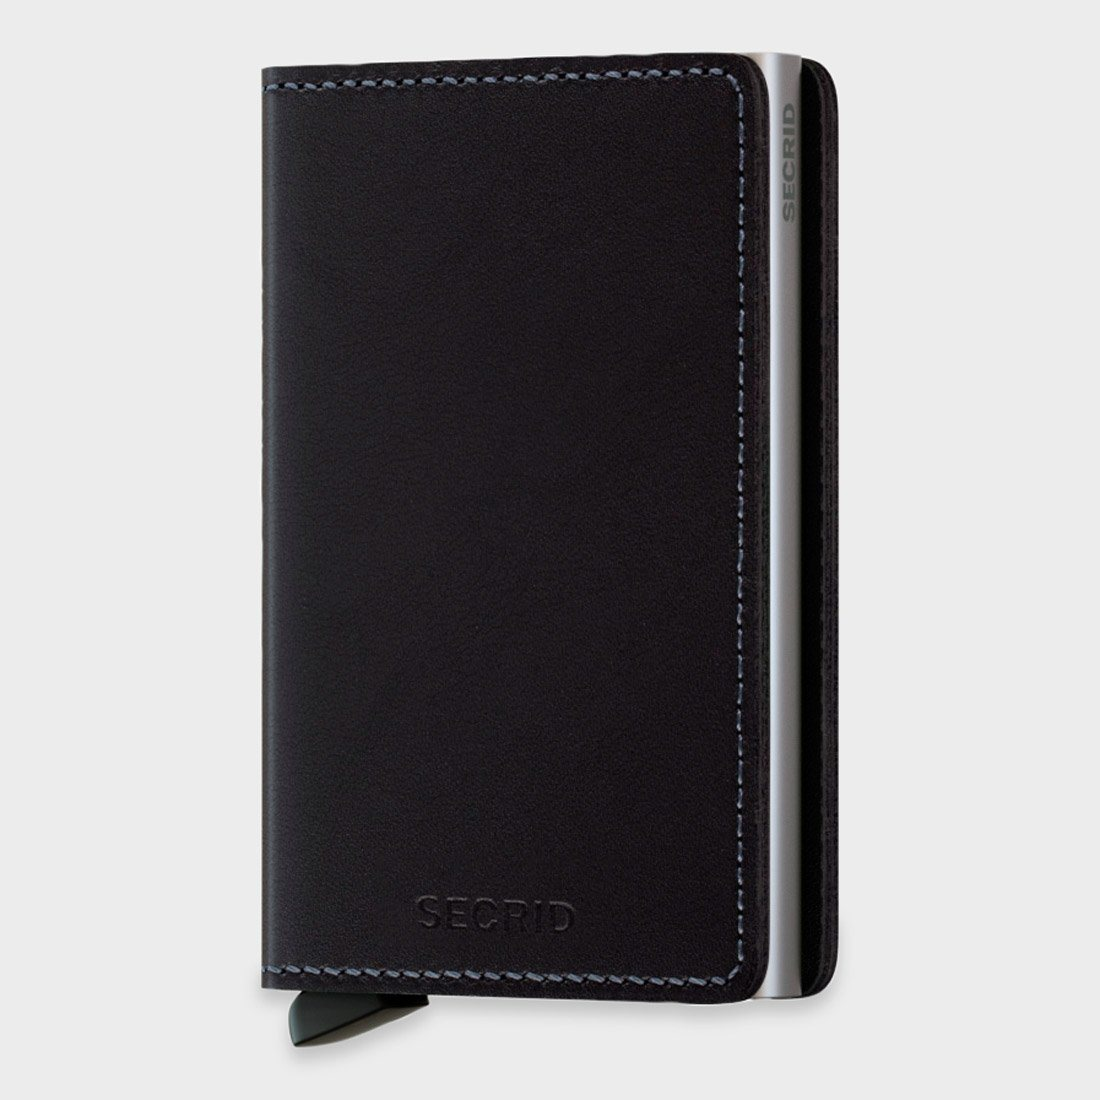 Secrid Original Slimwallet Black